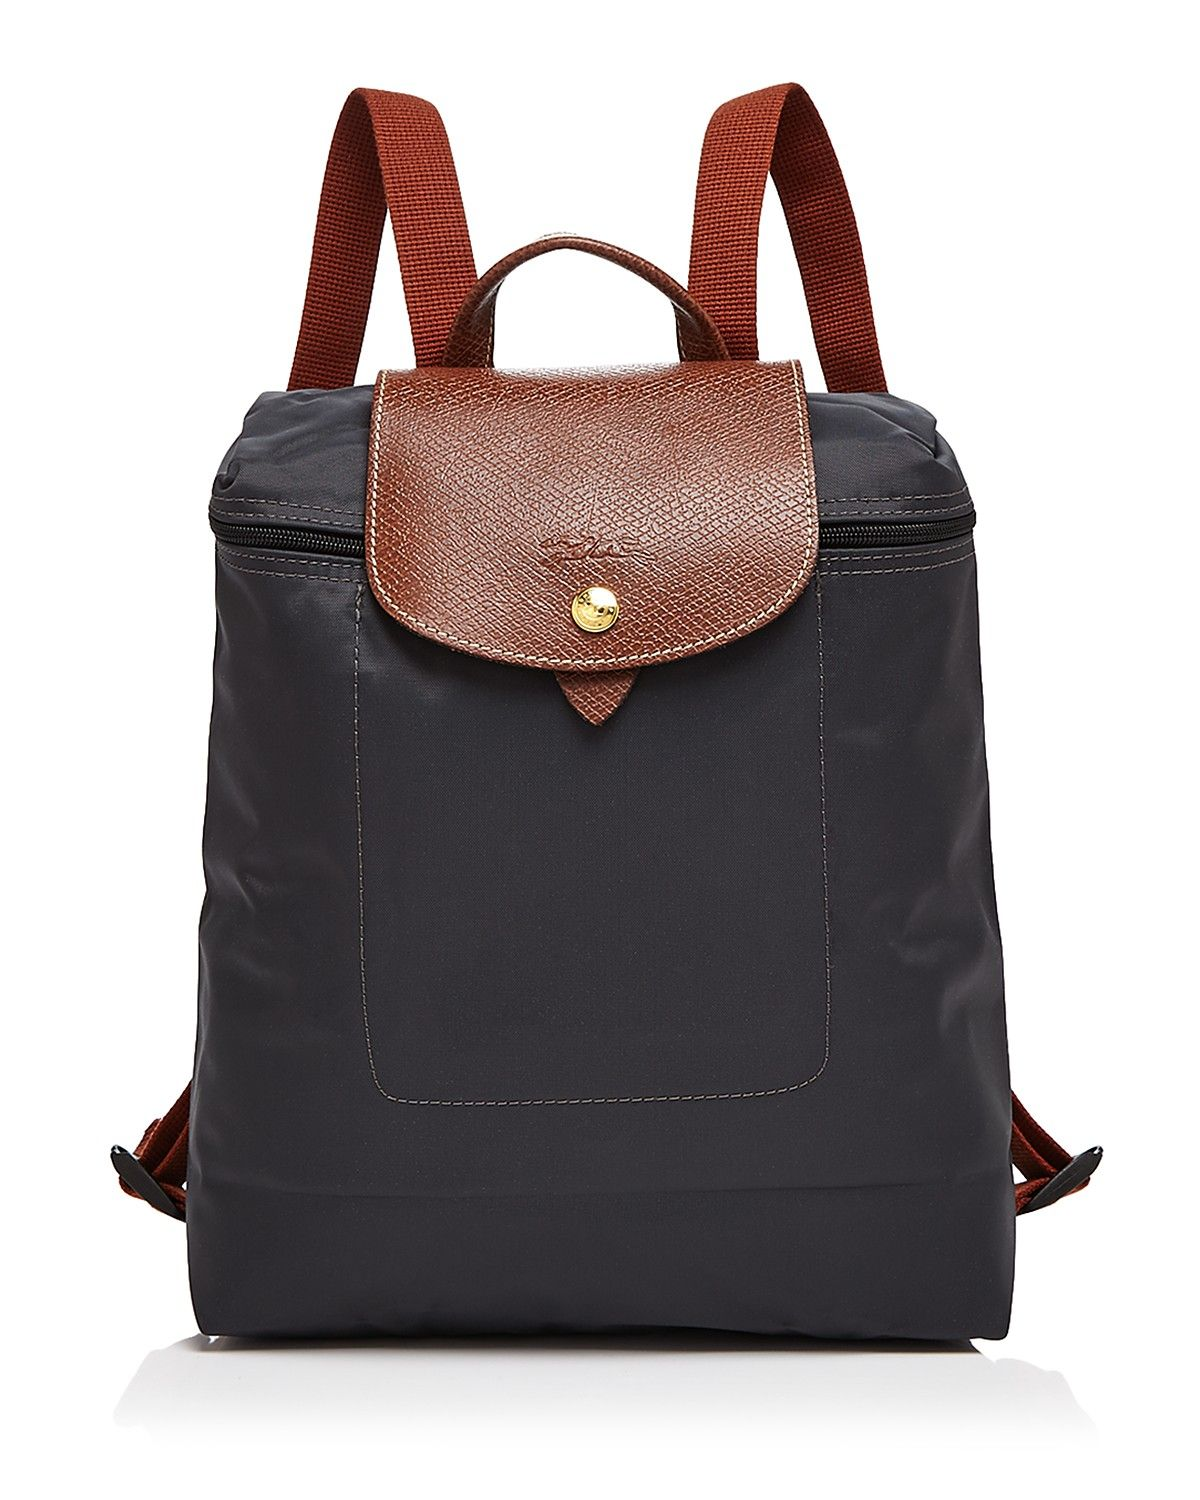 Bag · Longchamp Backpack - Le Pliage | Bloomingdale's